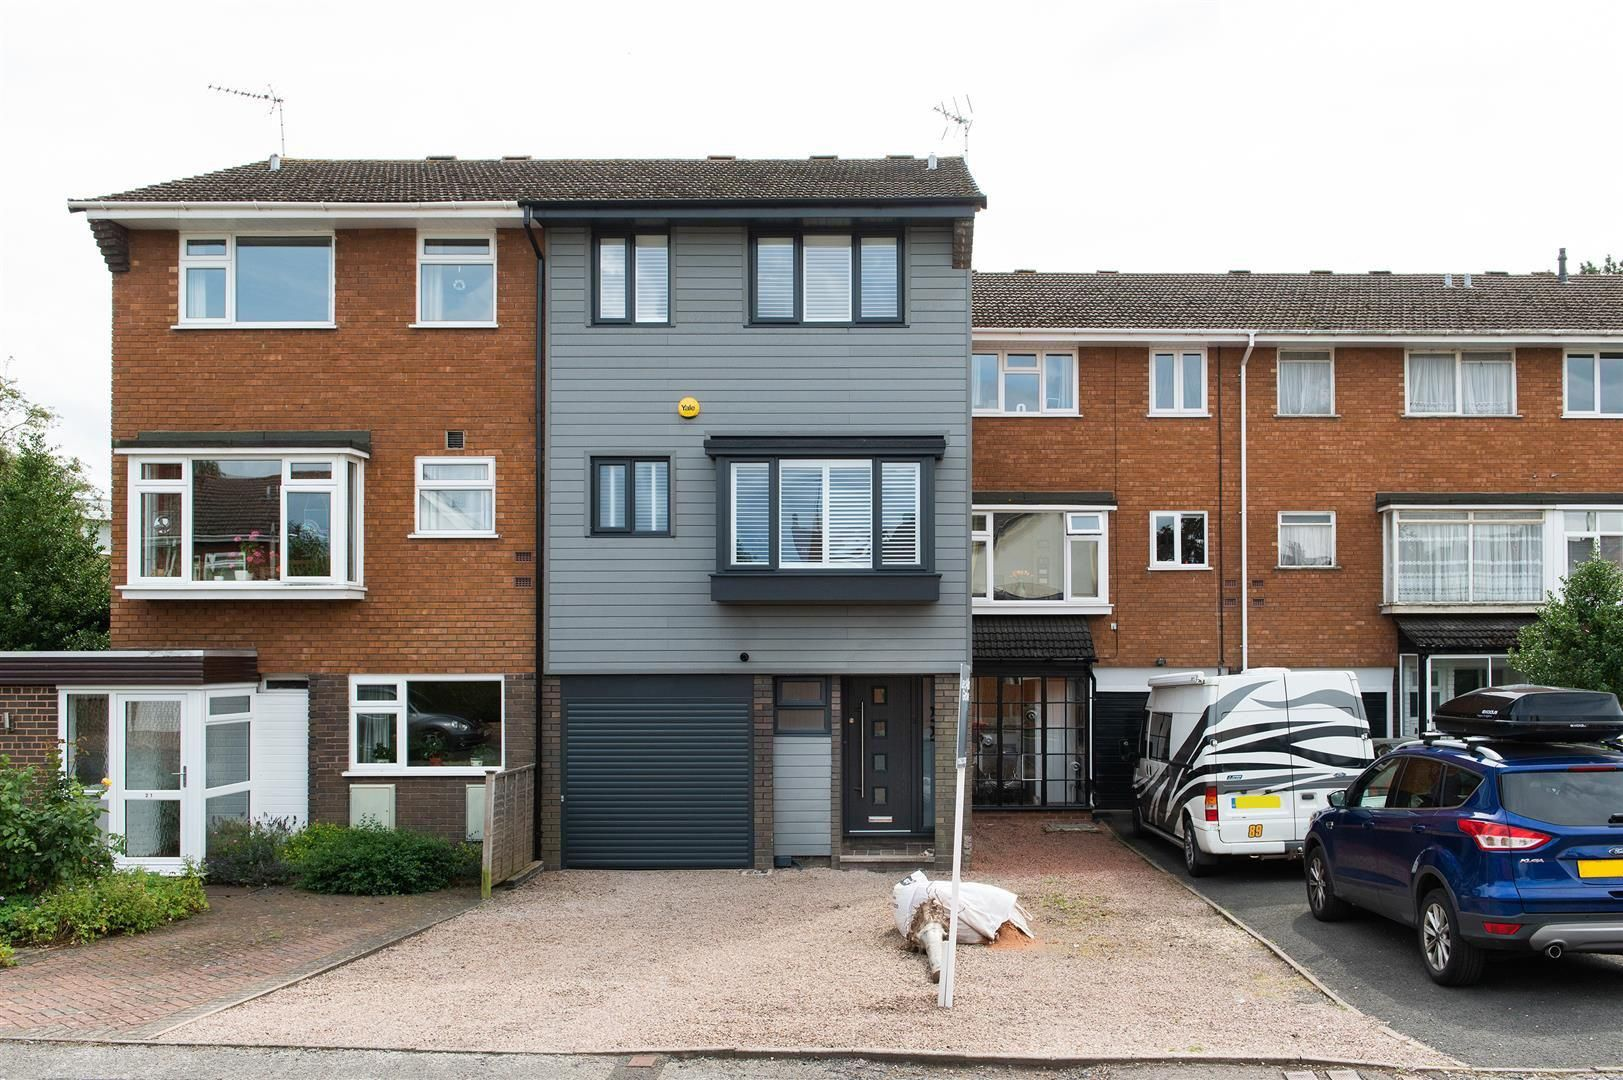 3 bed town-house for sale in Hagley 21